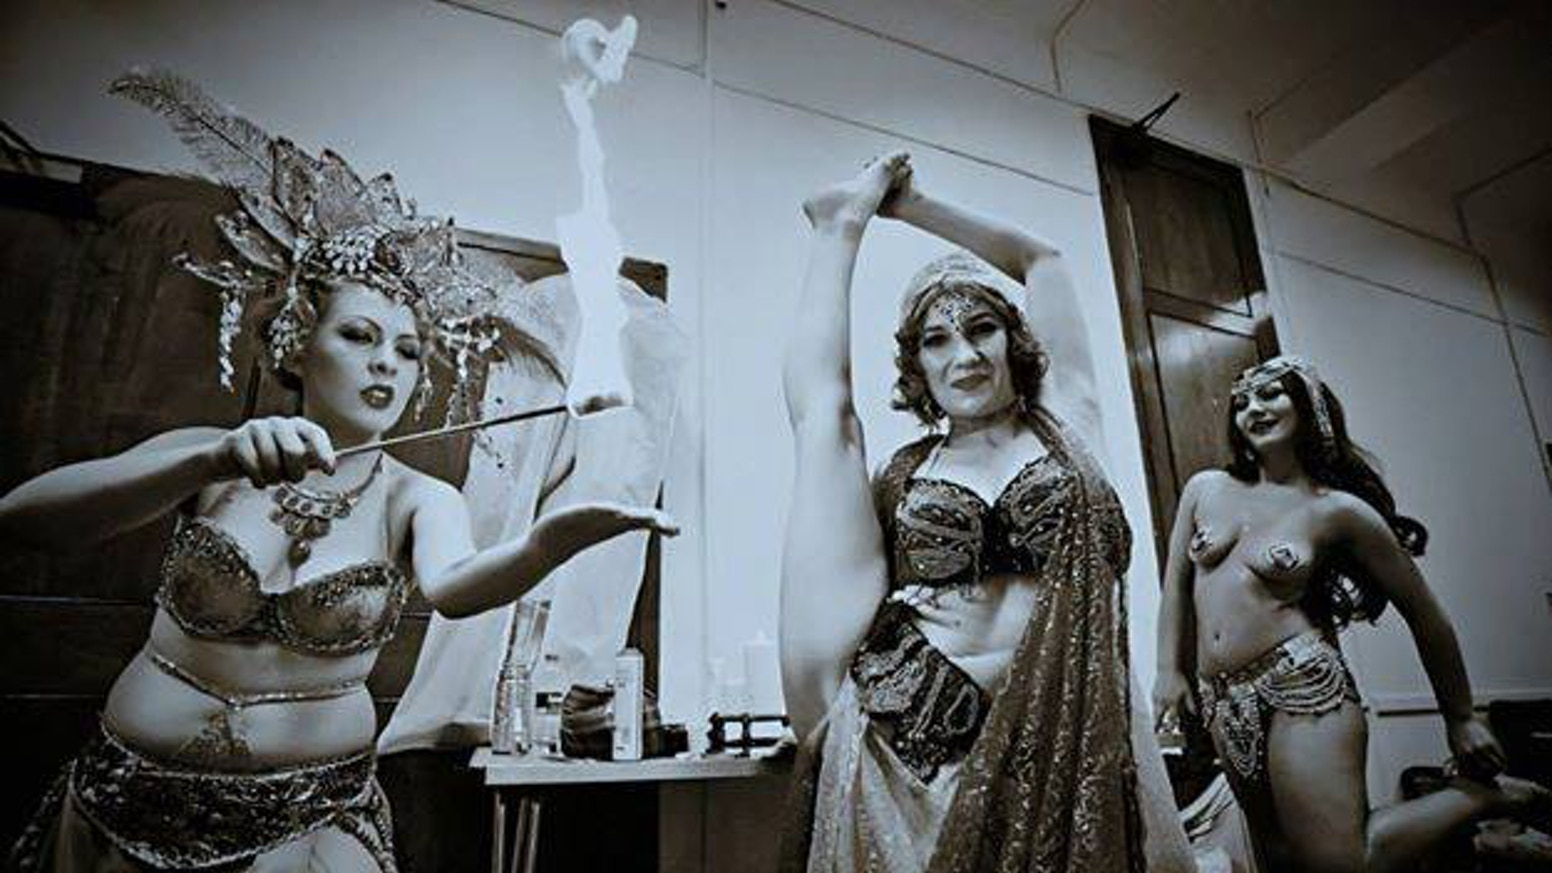 TO ACCESS THE EVENT PLEASE GO TO www.LONDONBURLESQUEFEST.com